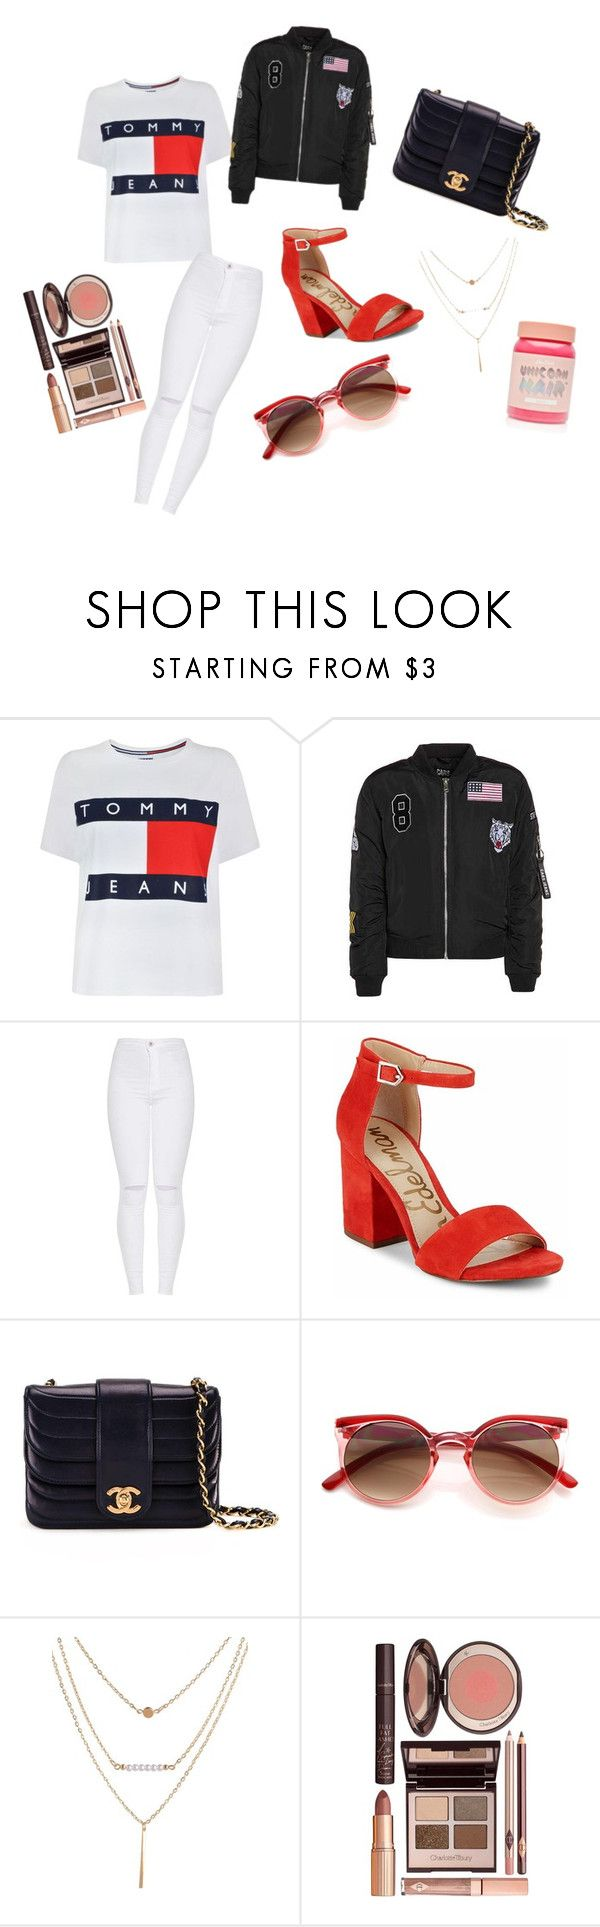 """Eeny meeny miny mo"" by maddy-lane235 on Polyvore featuring Tommy Hilfiger, Sam Edelman, Chanel, Charlotte Tilbury and Lime Crime"